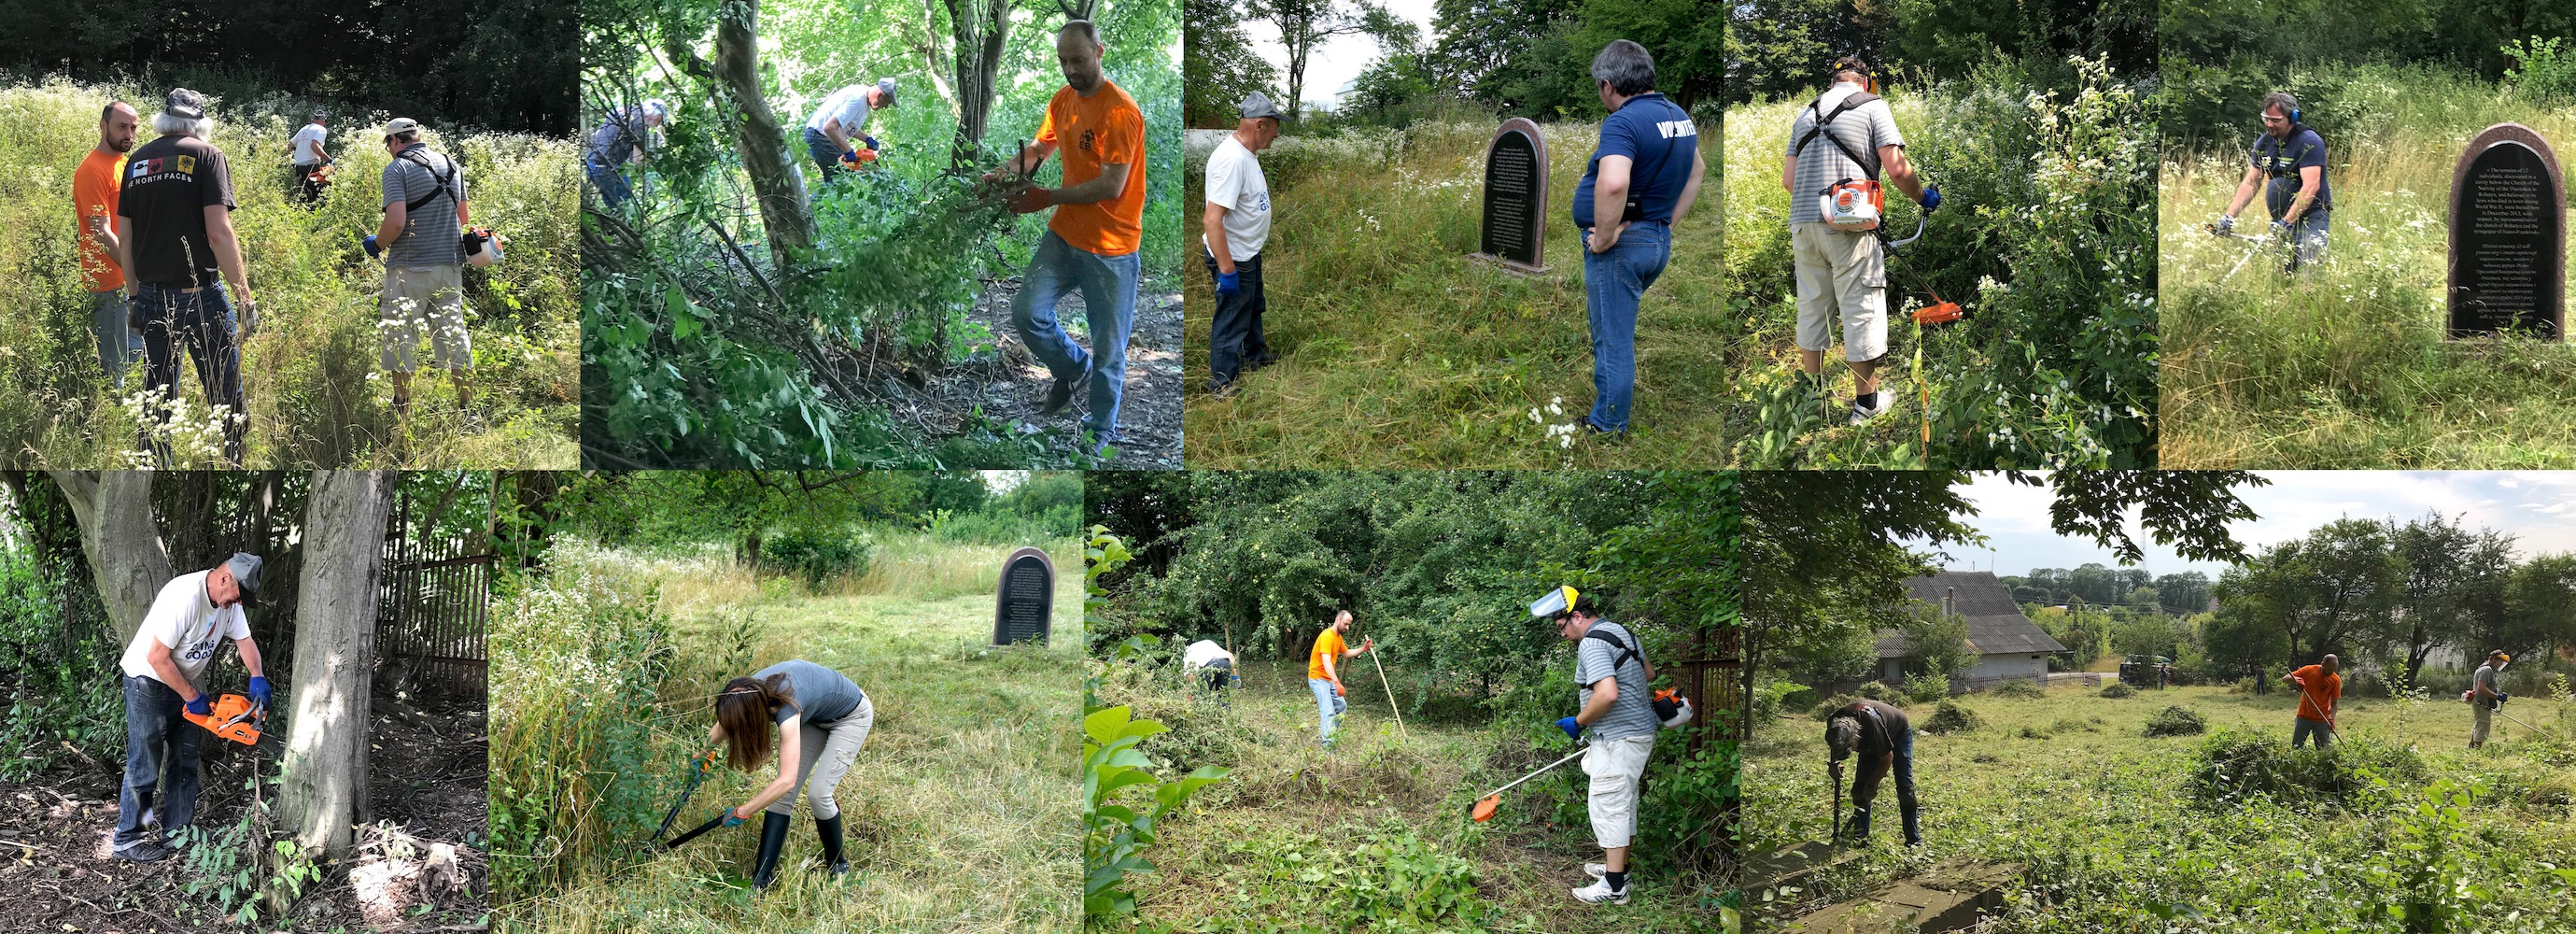 Typical scenes of the activity in the cemetery